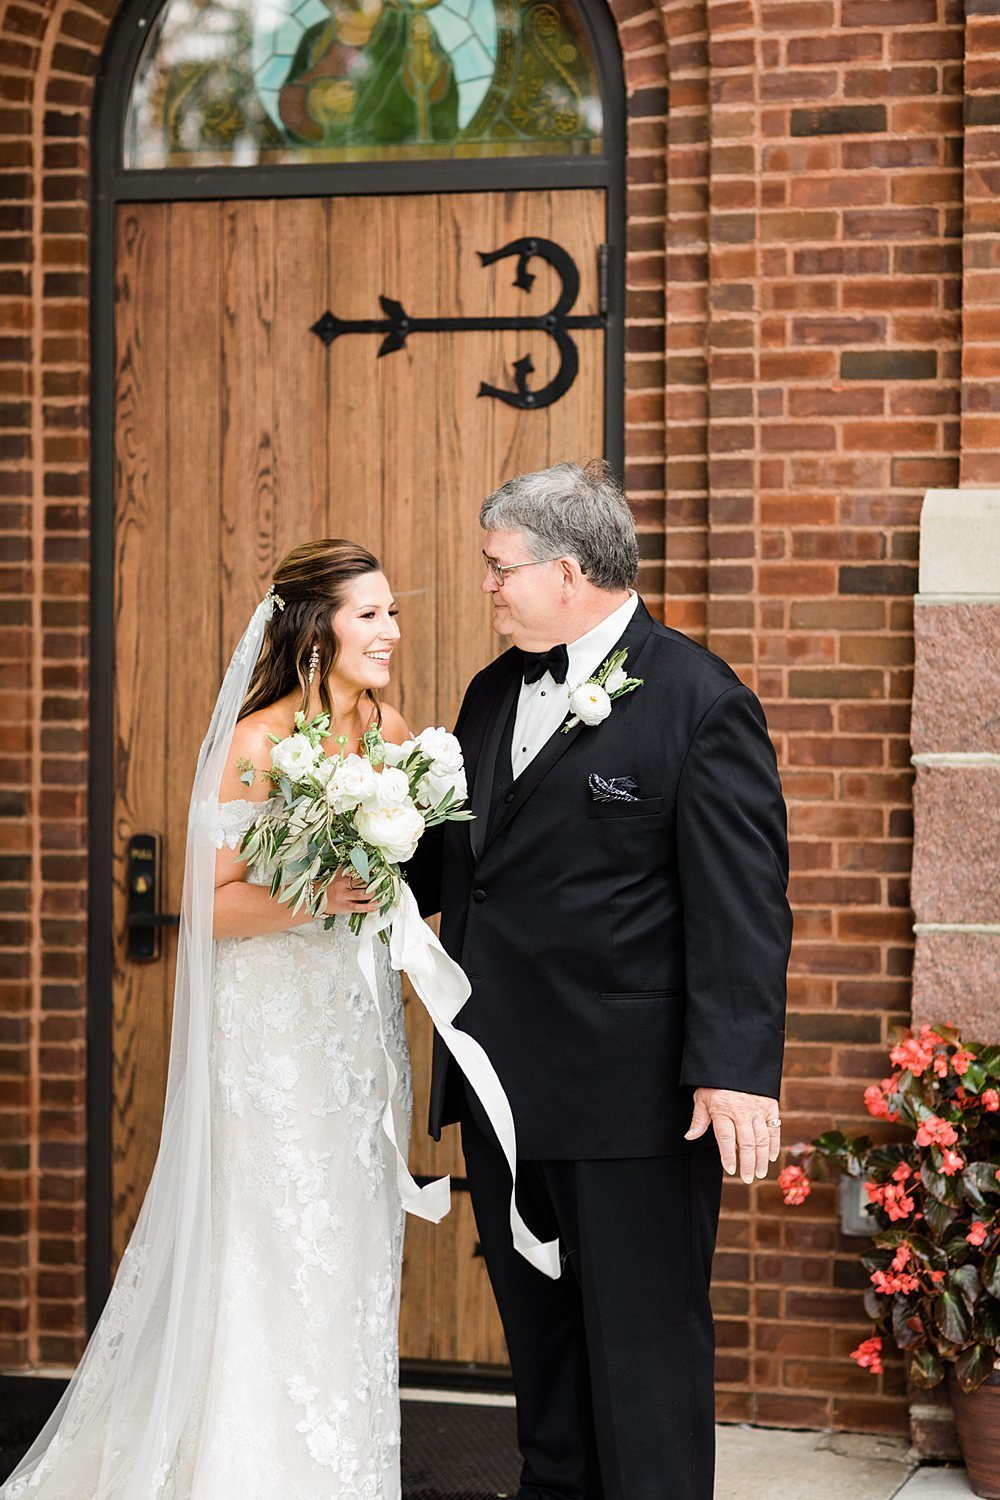 14_Classic-Wausau-Church-Wedding-James-Stokes-Photography